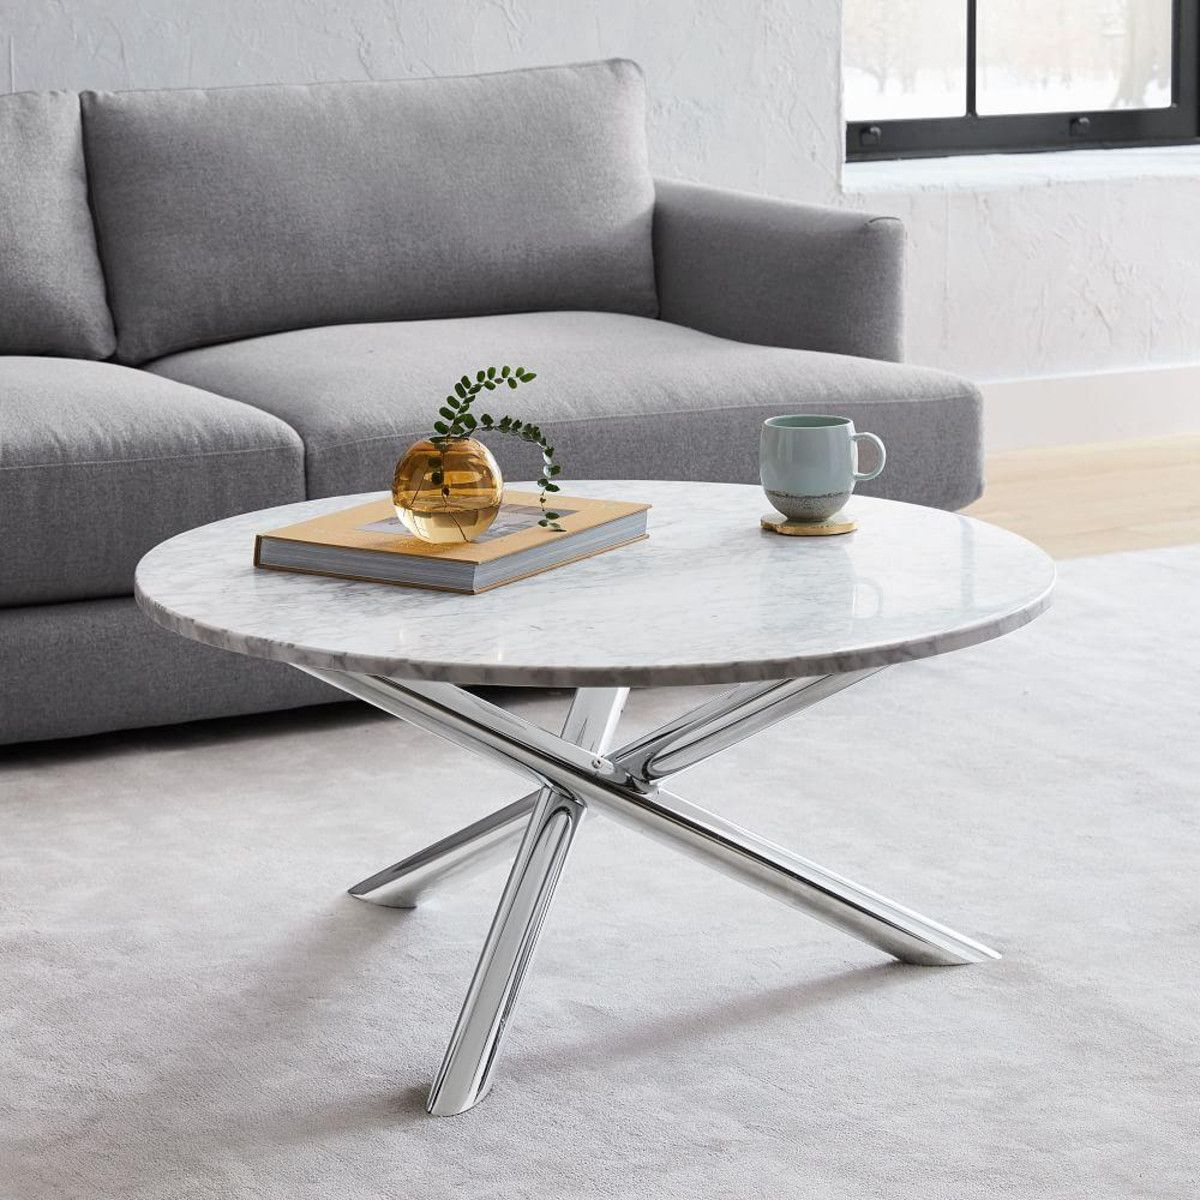 Apex Coffee Table West Elm Canada In 2020 Table Decor Home Decor